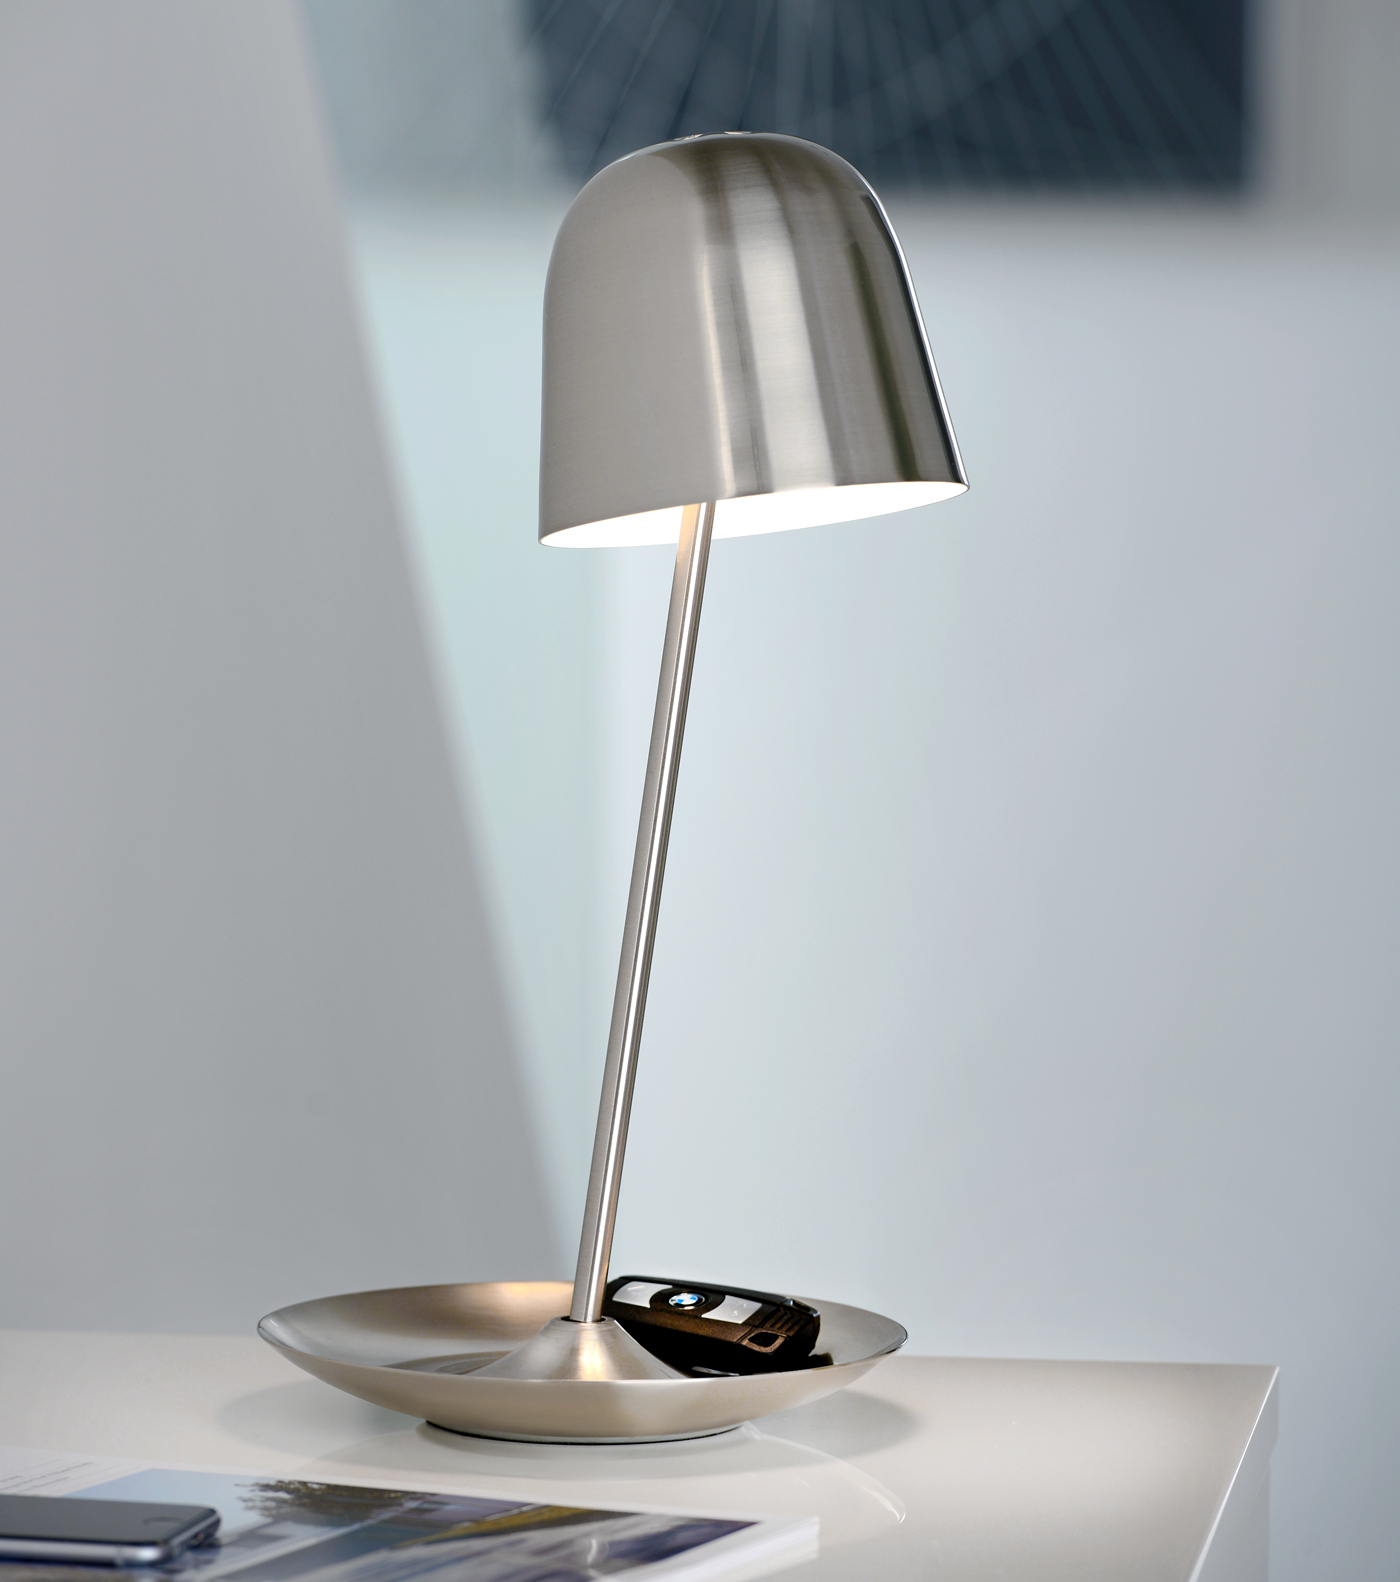 Groovy Eduard Euwens Pirol Table Lamp Sompex 2013 2014 Download Free Architecture Designs Ferenbritishbridgeorg